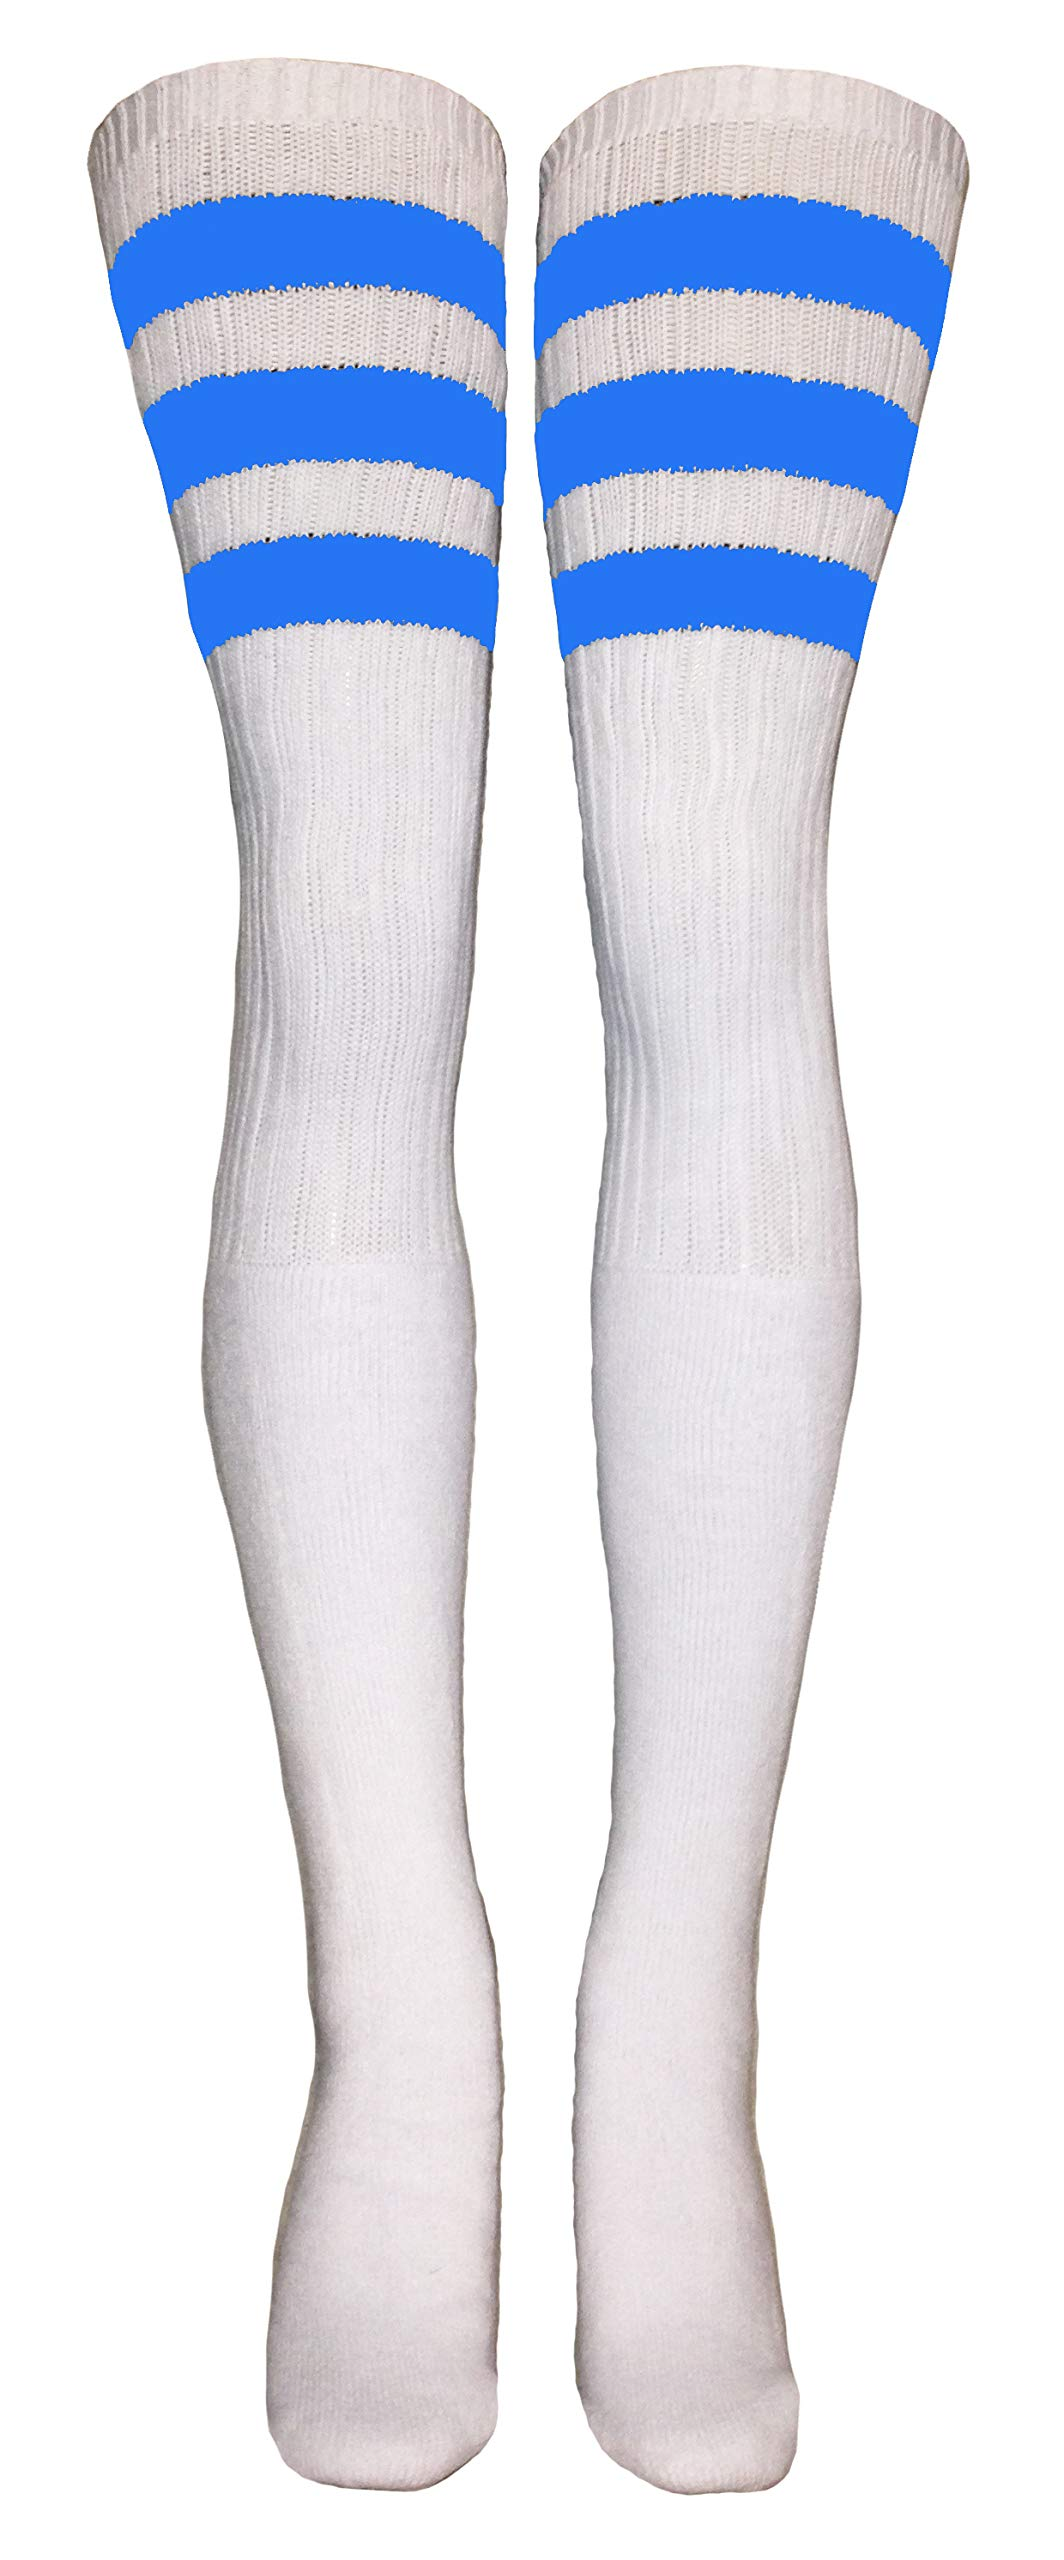 SKATERSOCKS 45'' Thigh High White Tube Socks with Baby Blue stripes style 1 by skatersocks